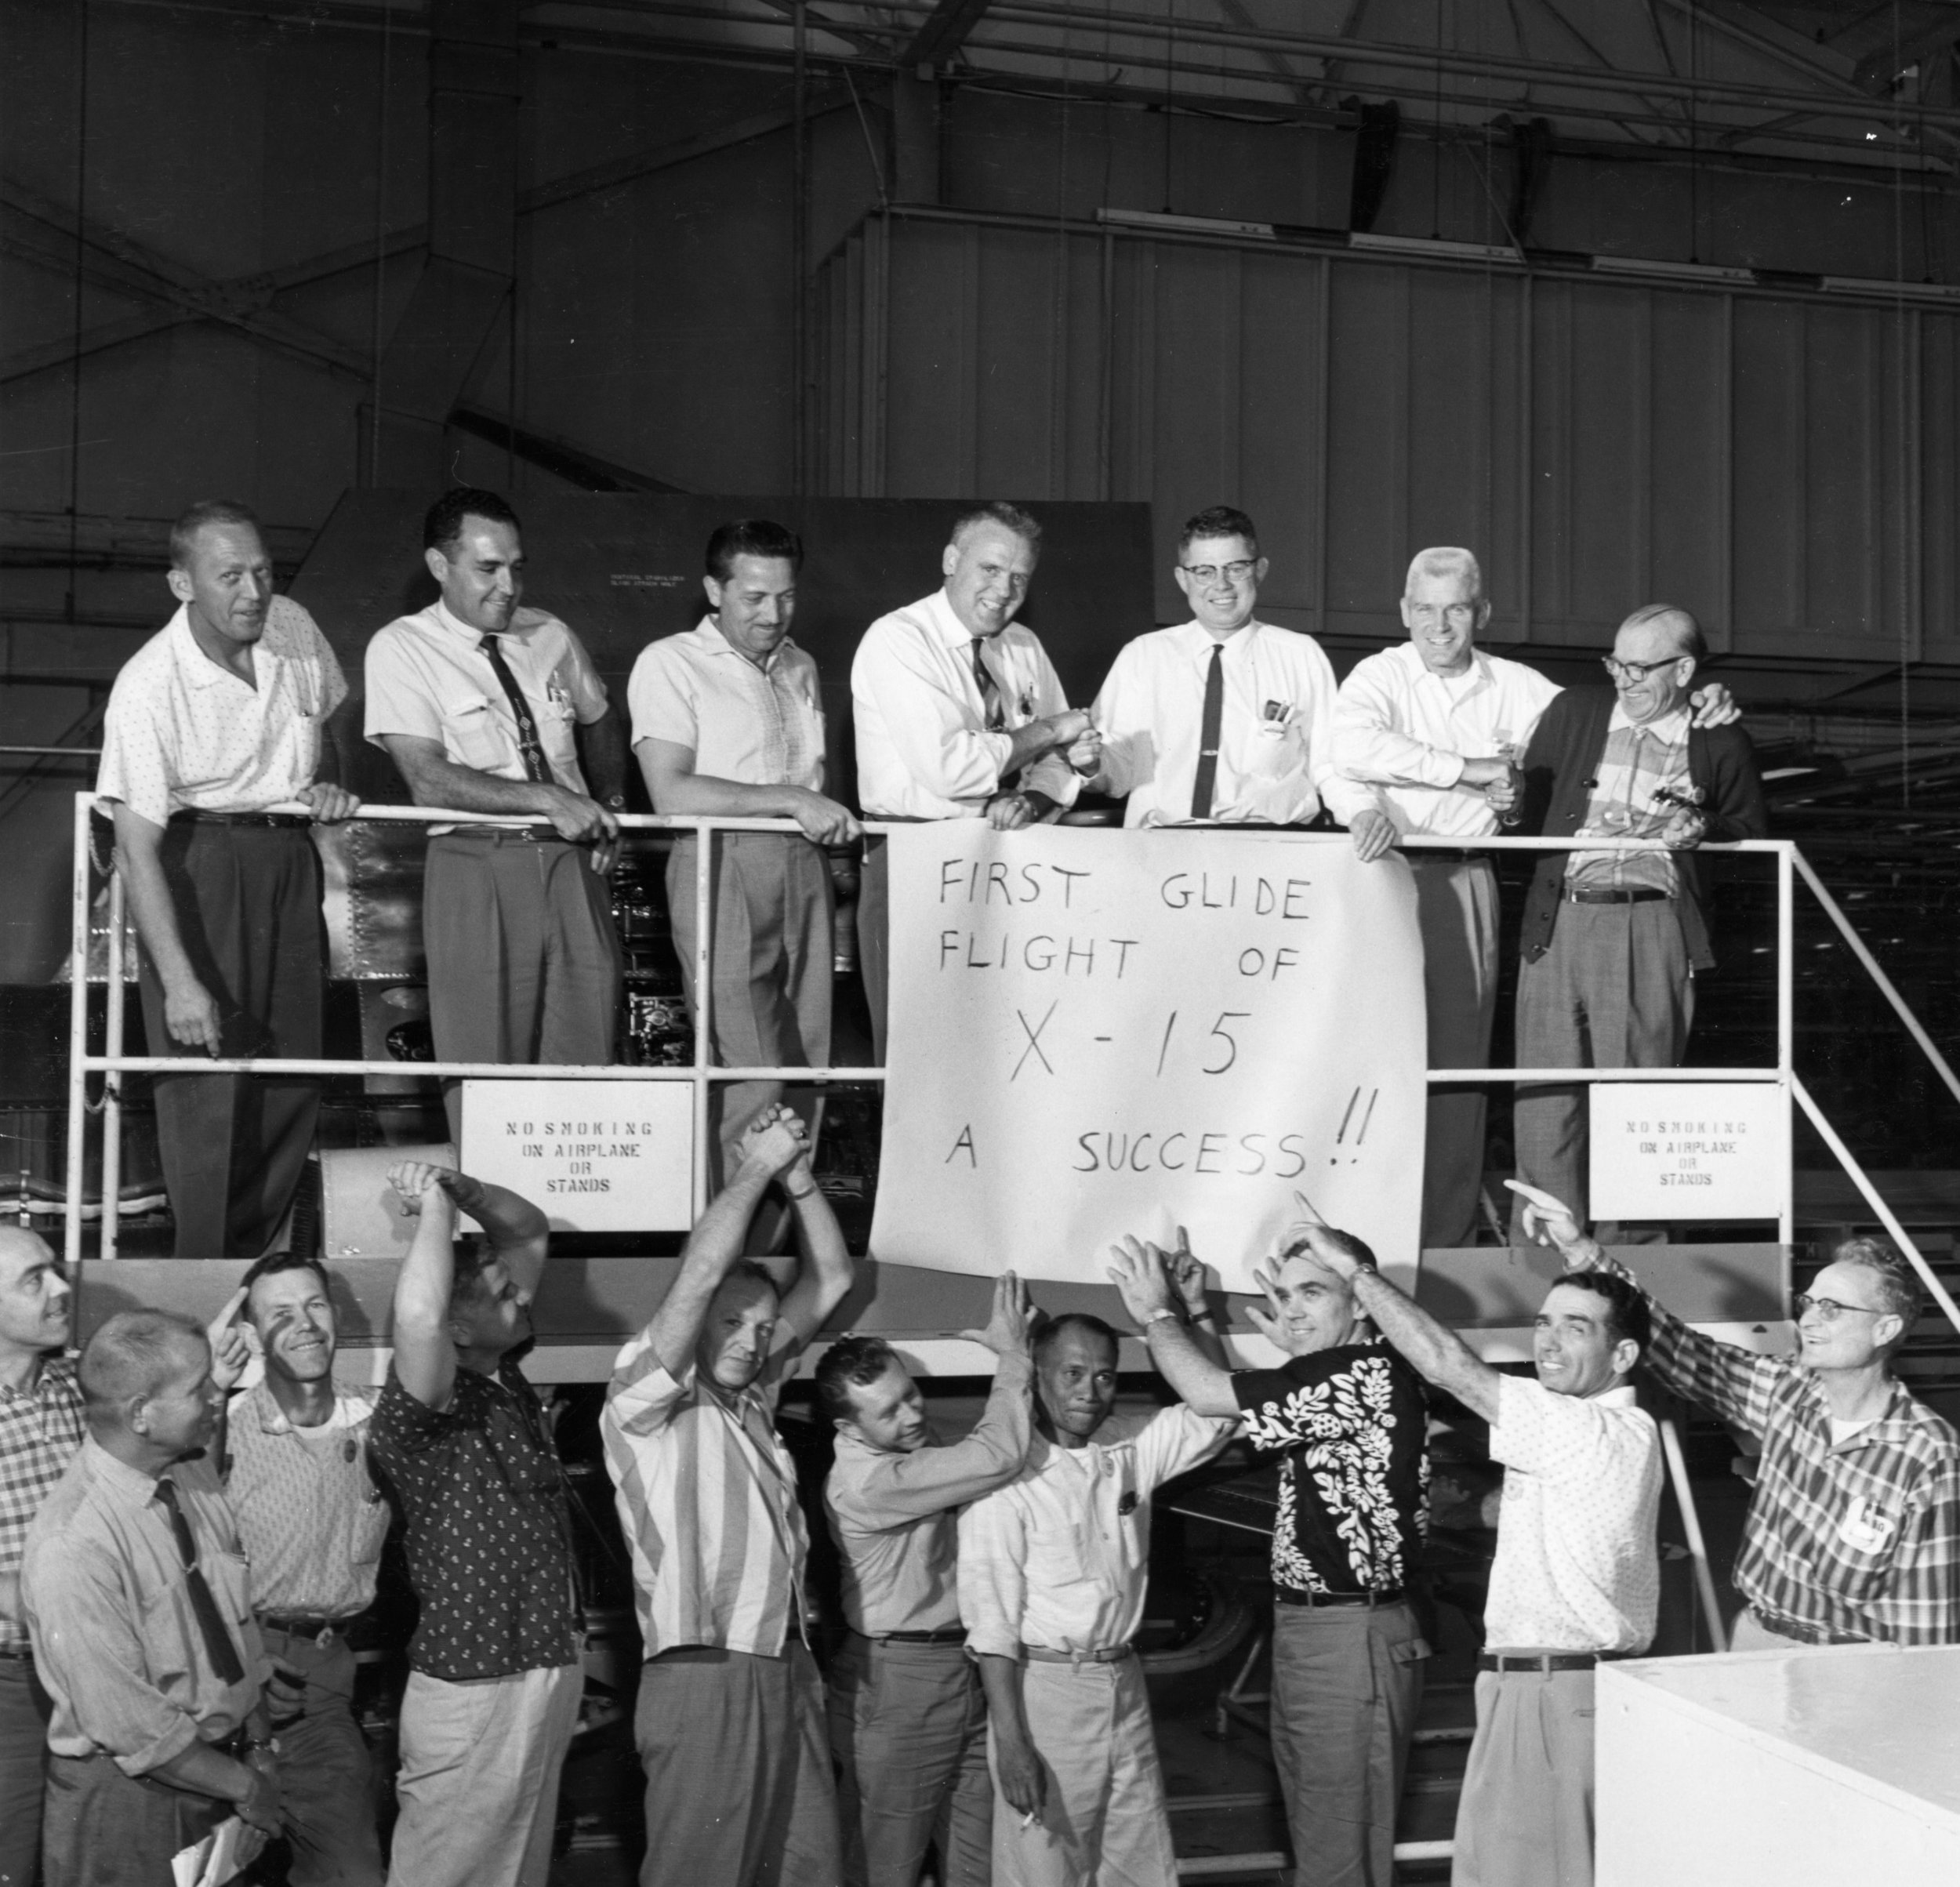 X-15 program staff celebrate the first glide flight in June 1959